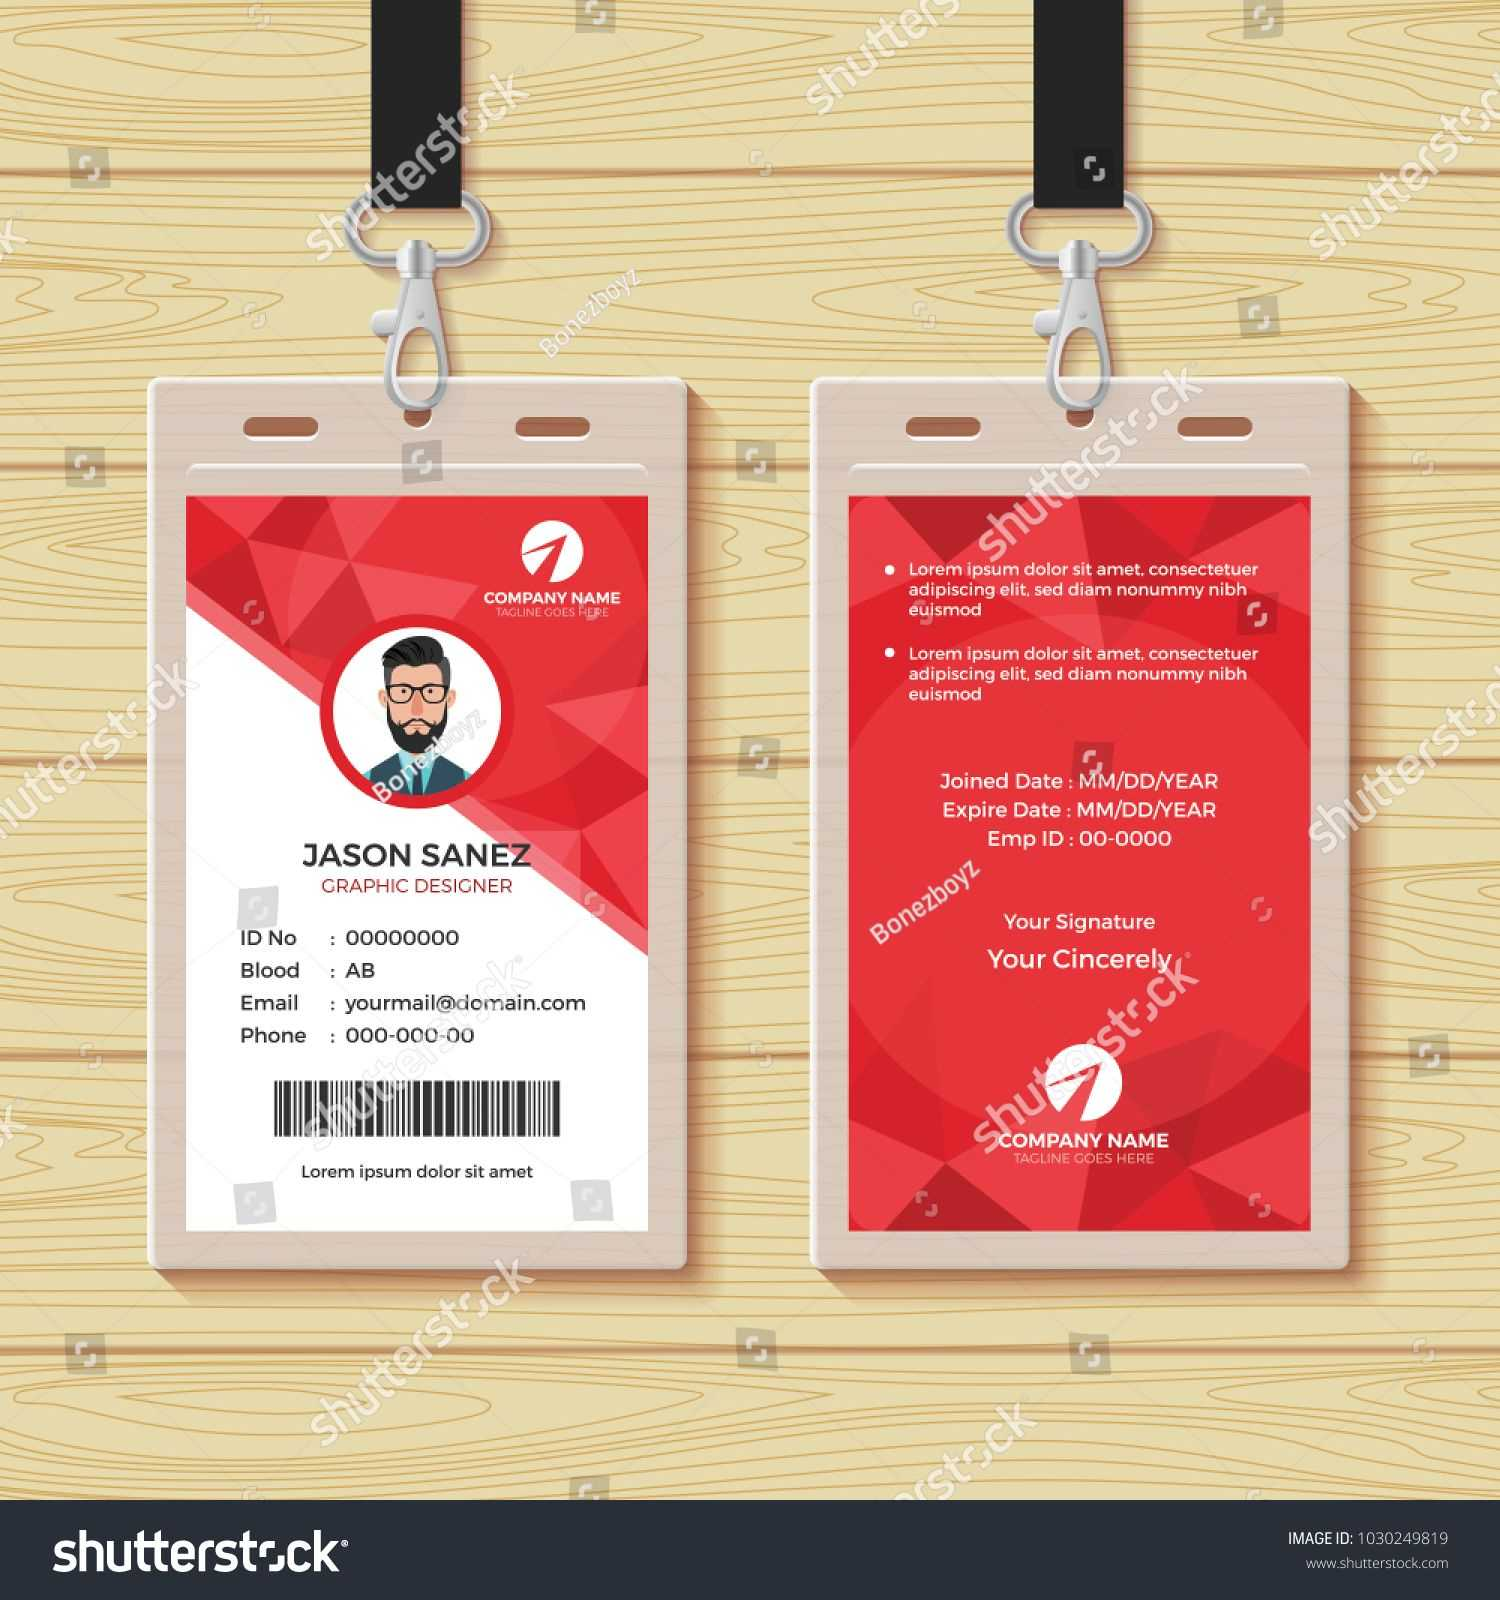 This Id Card Template Perfect For Any Types Of Agency for Company Id Card Design Template